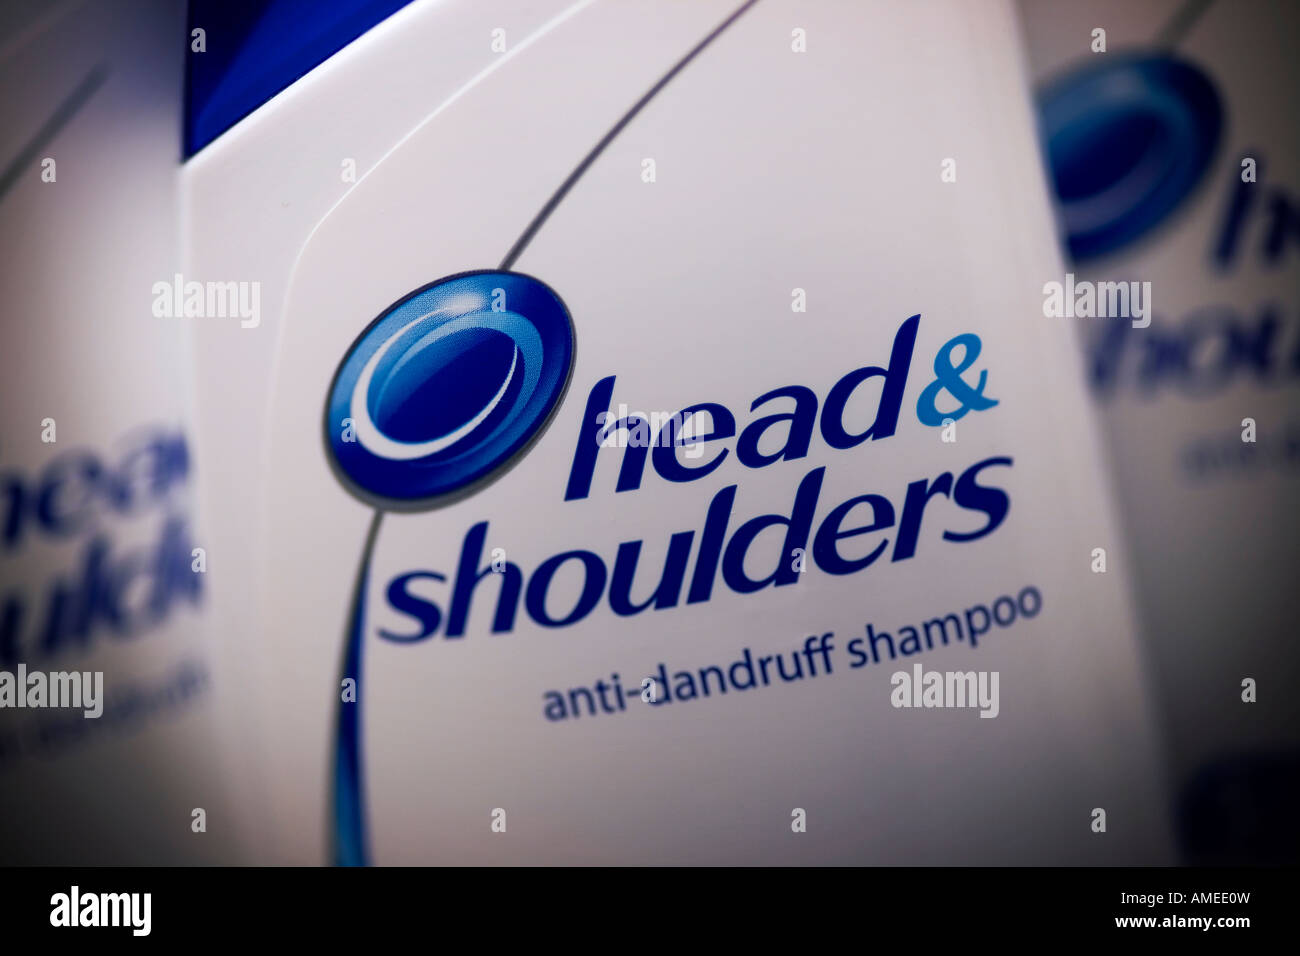 Head and Shoulders anti dandruff shampoo Head and Shoulders is a Procter Gamble brand Stock Photo